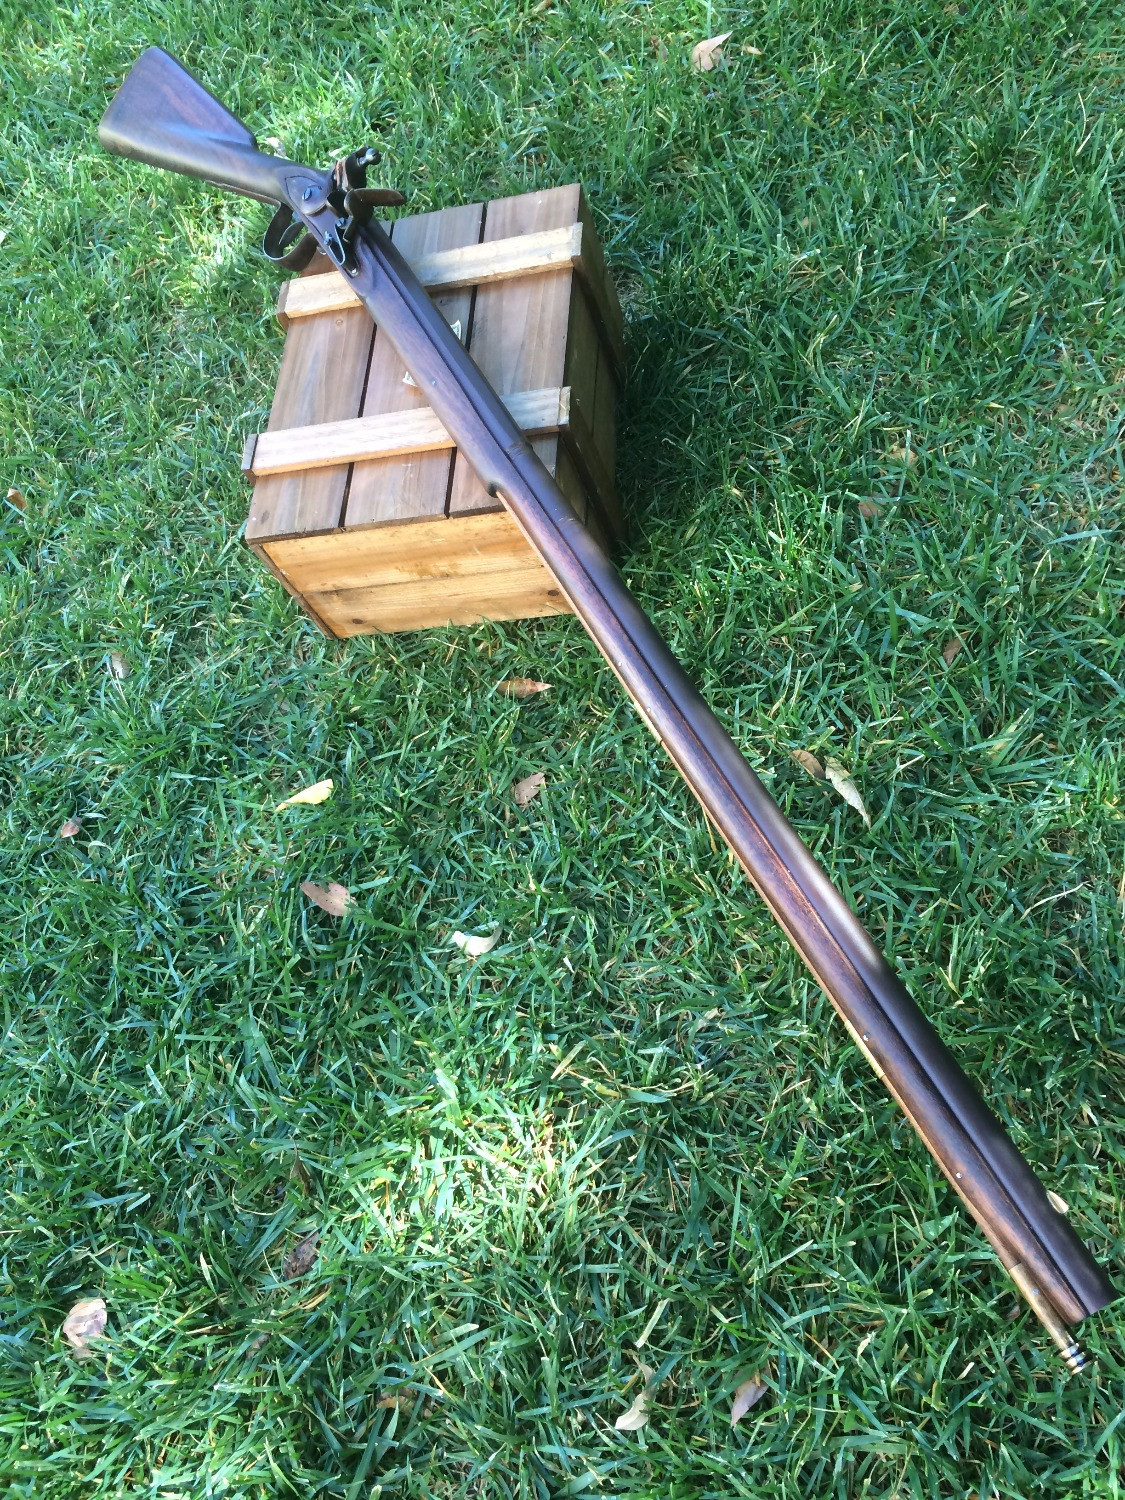 Northwest Trade Gun